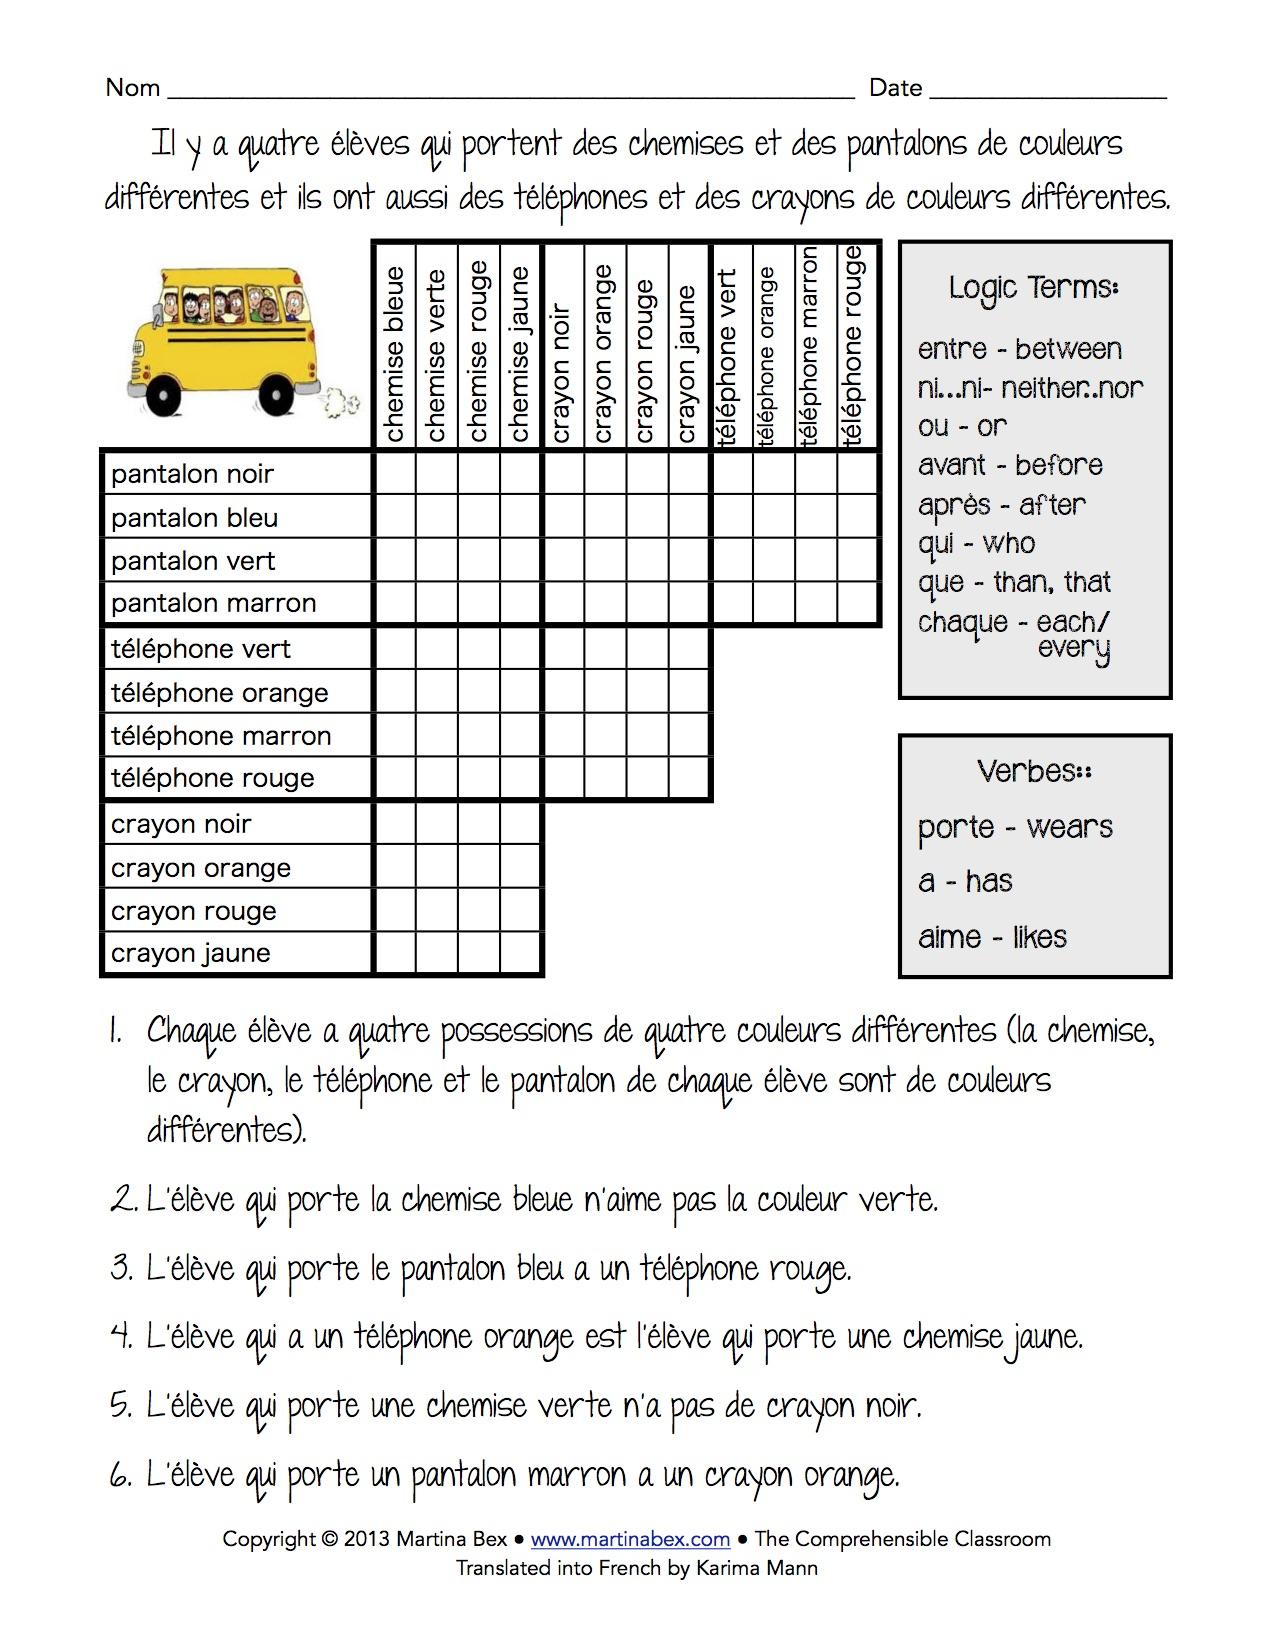 Logic puzzle in French – The Comprehensible Classroom